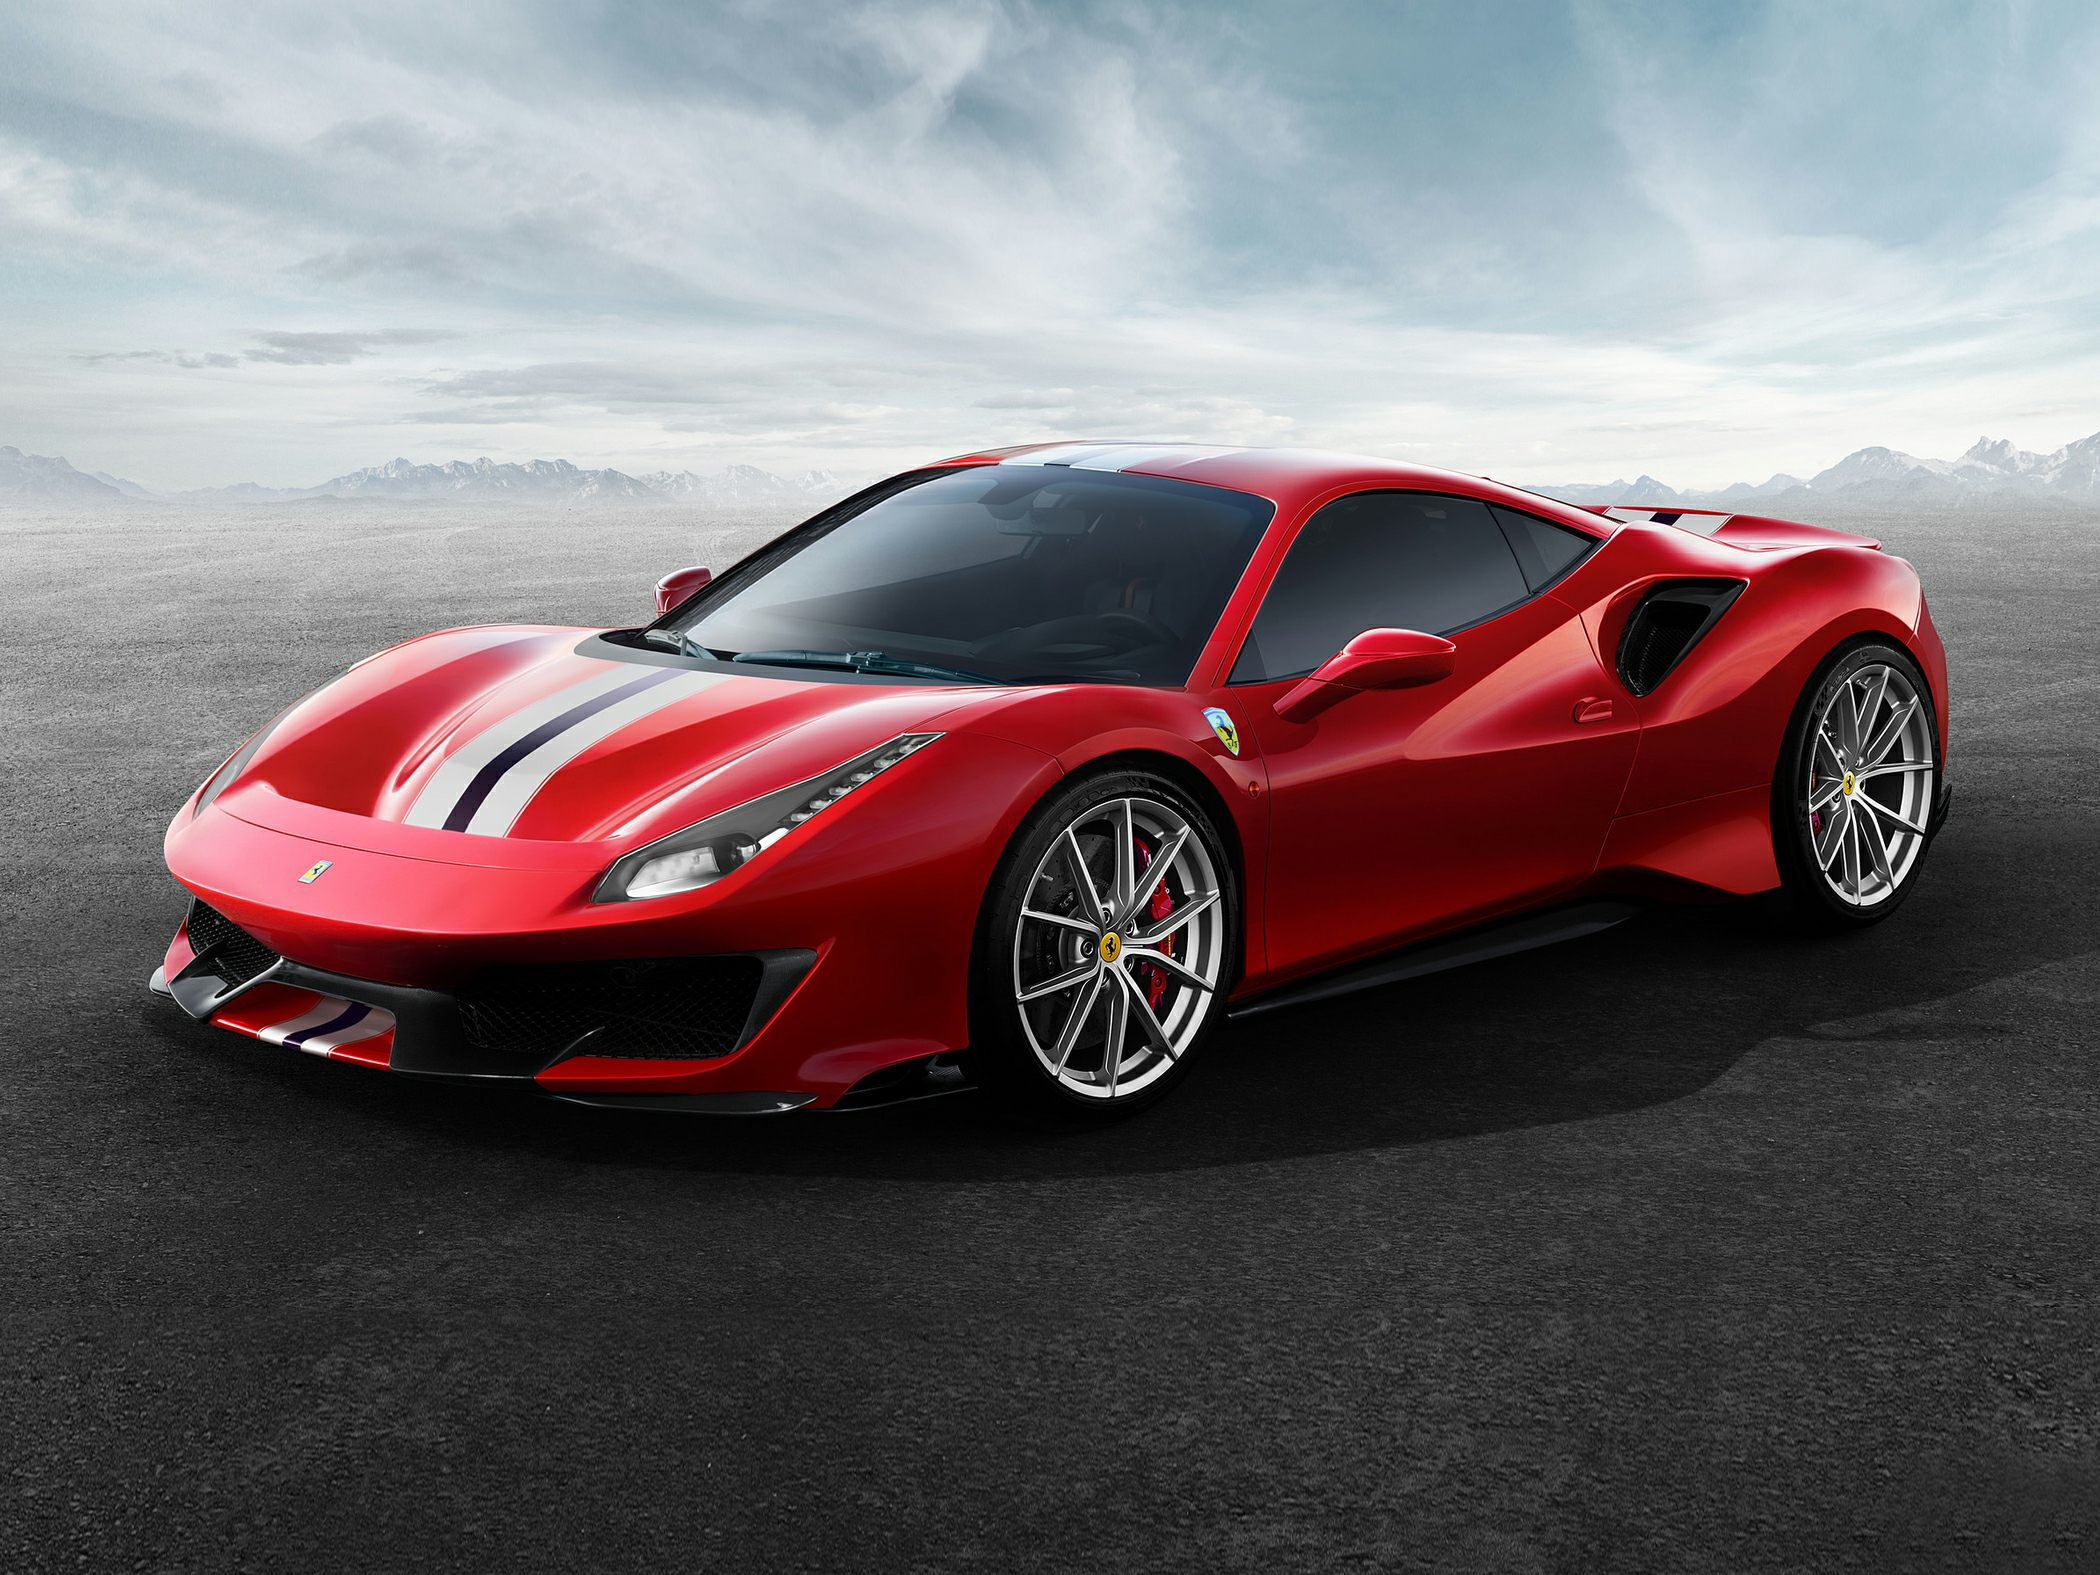 2020 Ferrari 488 Pista Base 2dr Coupe Pricing And Options